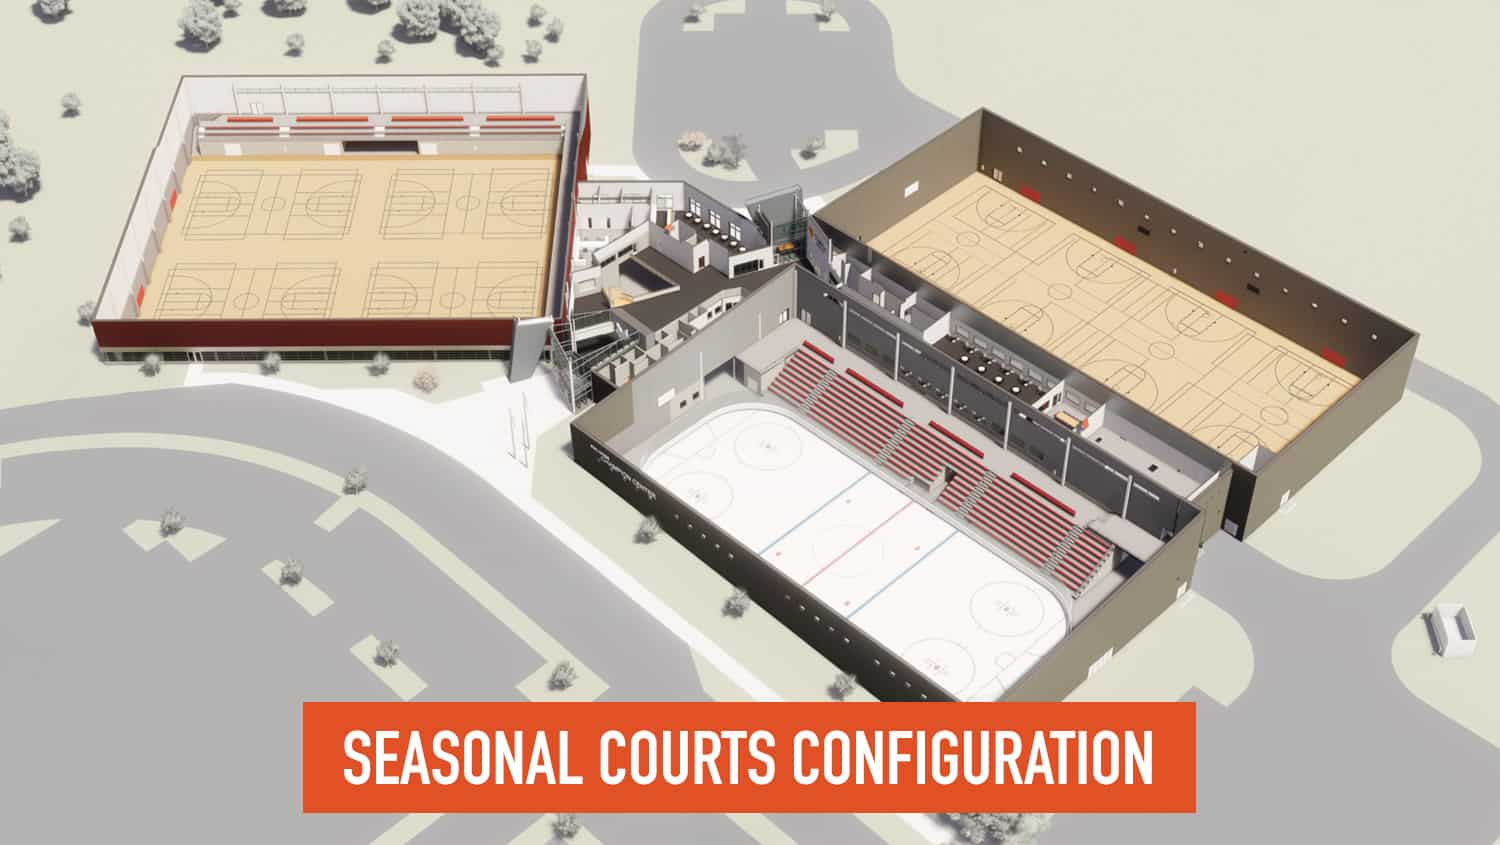 Seasonal Courts Configuration